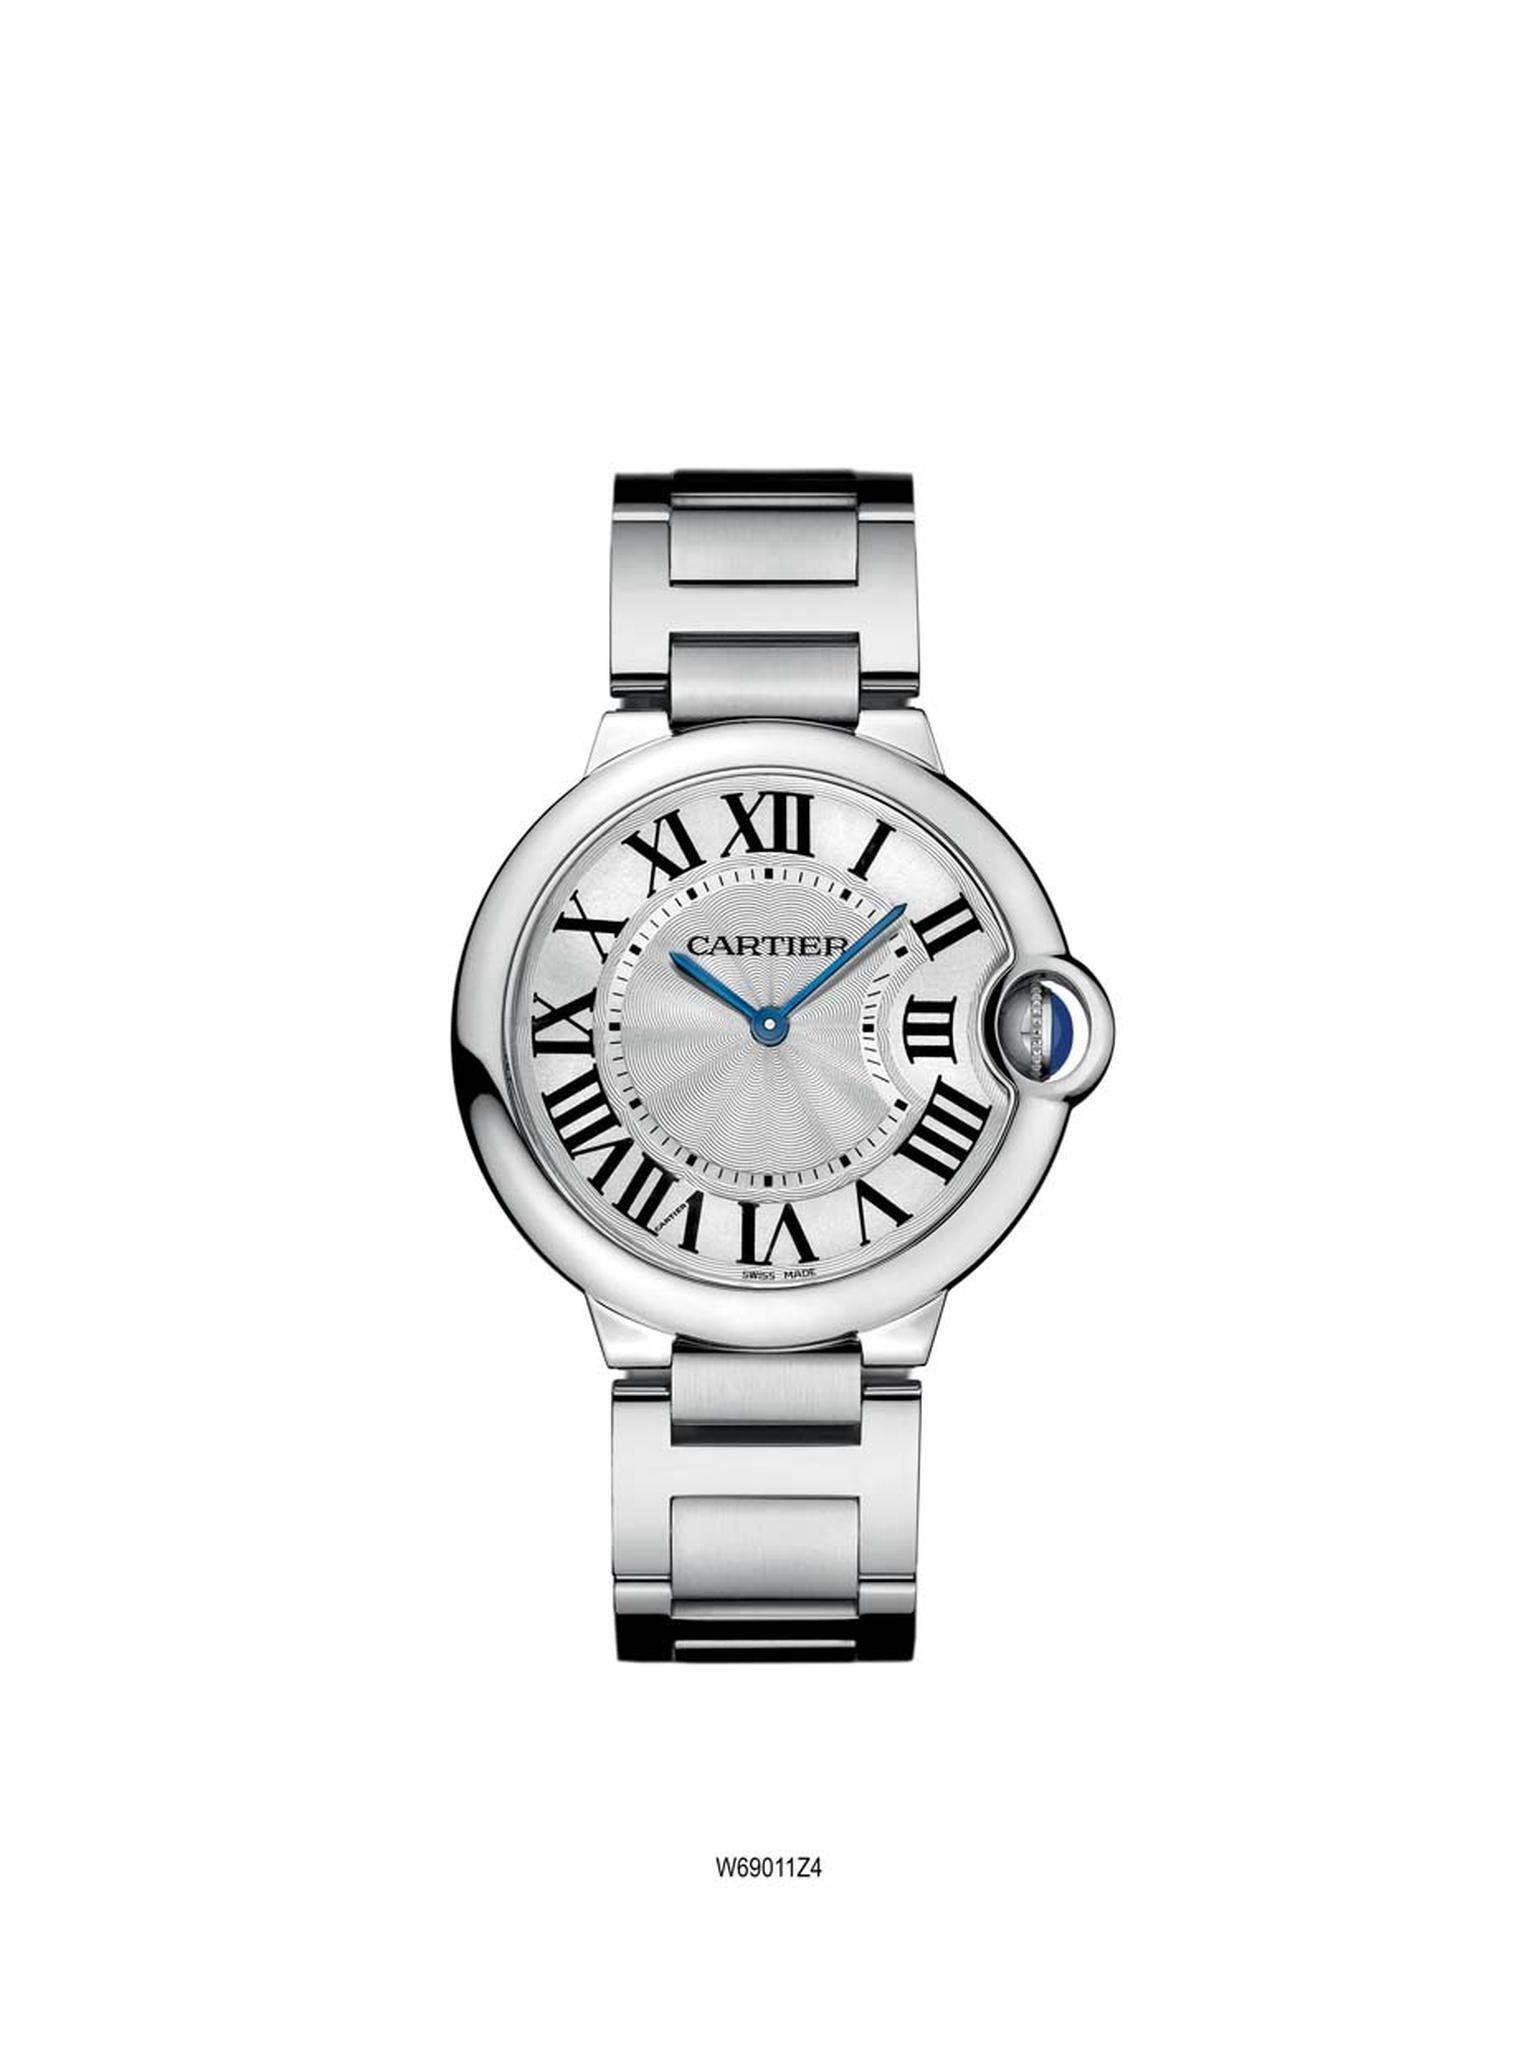 The Ballon Blue de Cartier, released in 2007, in stainless steel features a guilloché dial with large Roman numerals (£3,850).